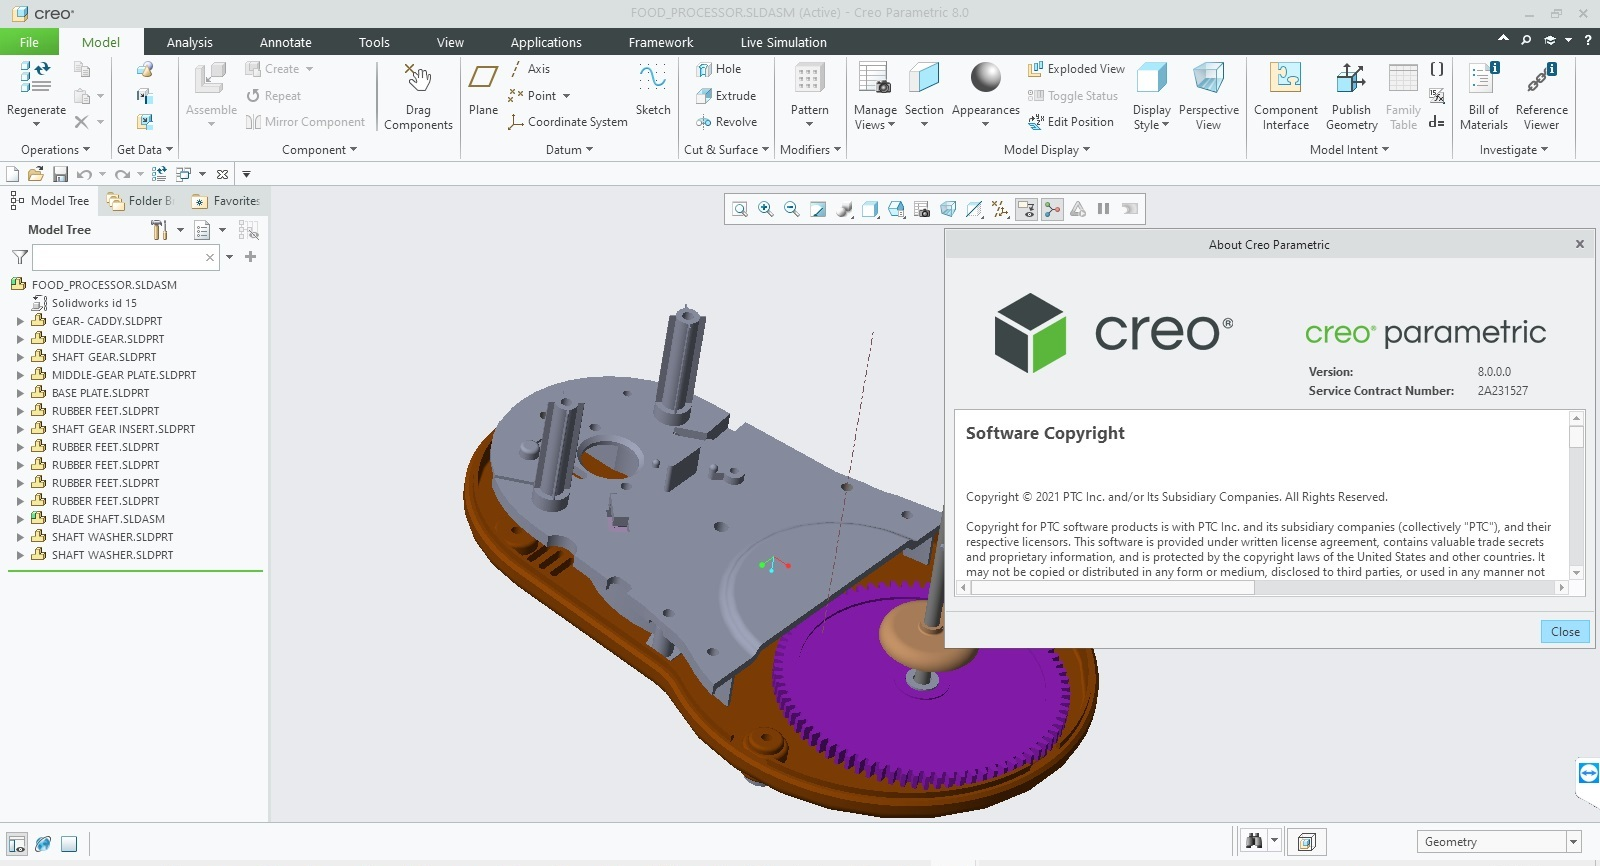 Download PTC Creo 8.0.0.0 + HelpCenter Win64 full license forever